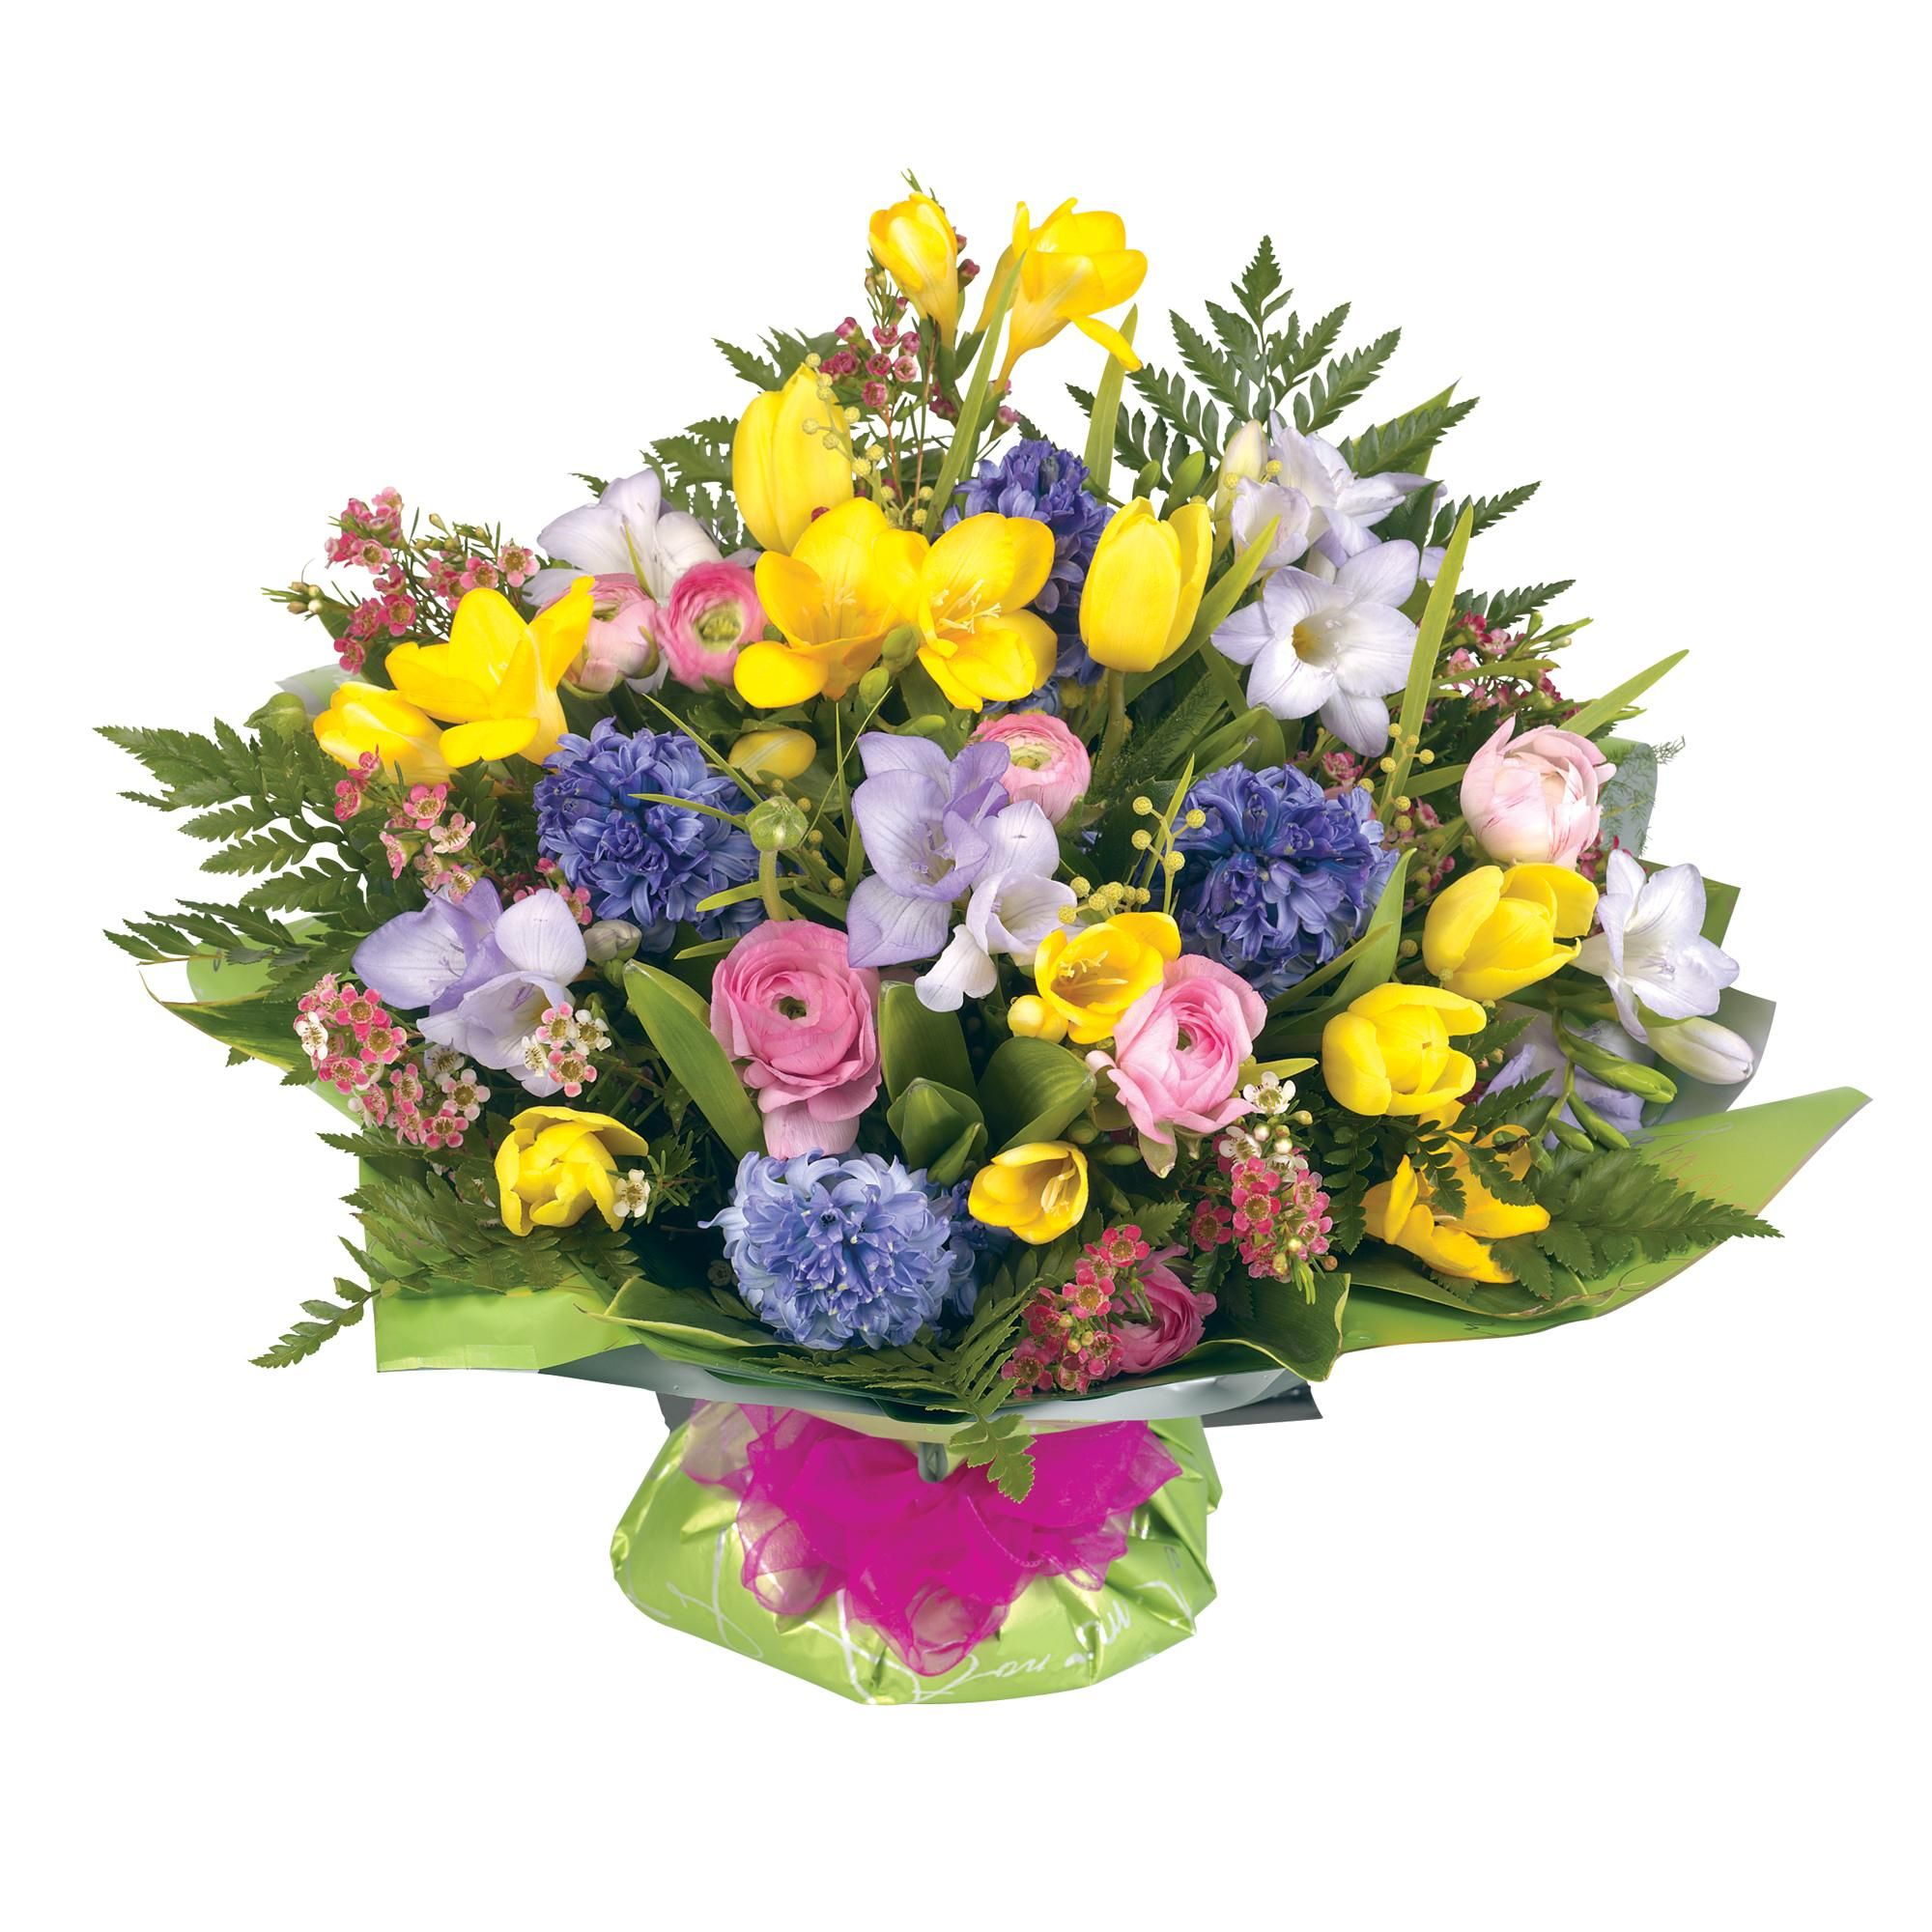 spring flowers bouquet Google Search Birthday flowers